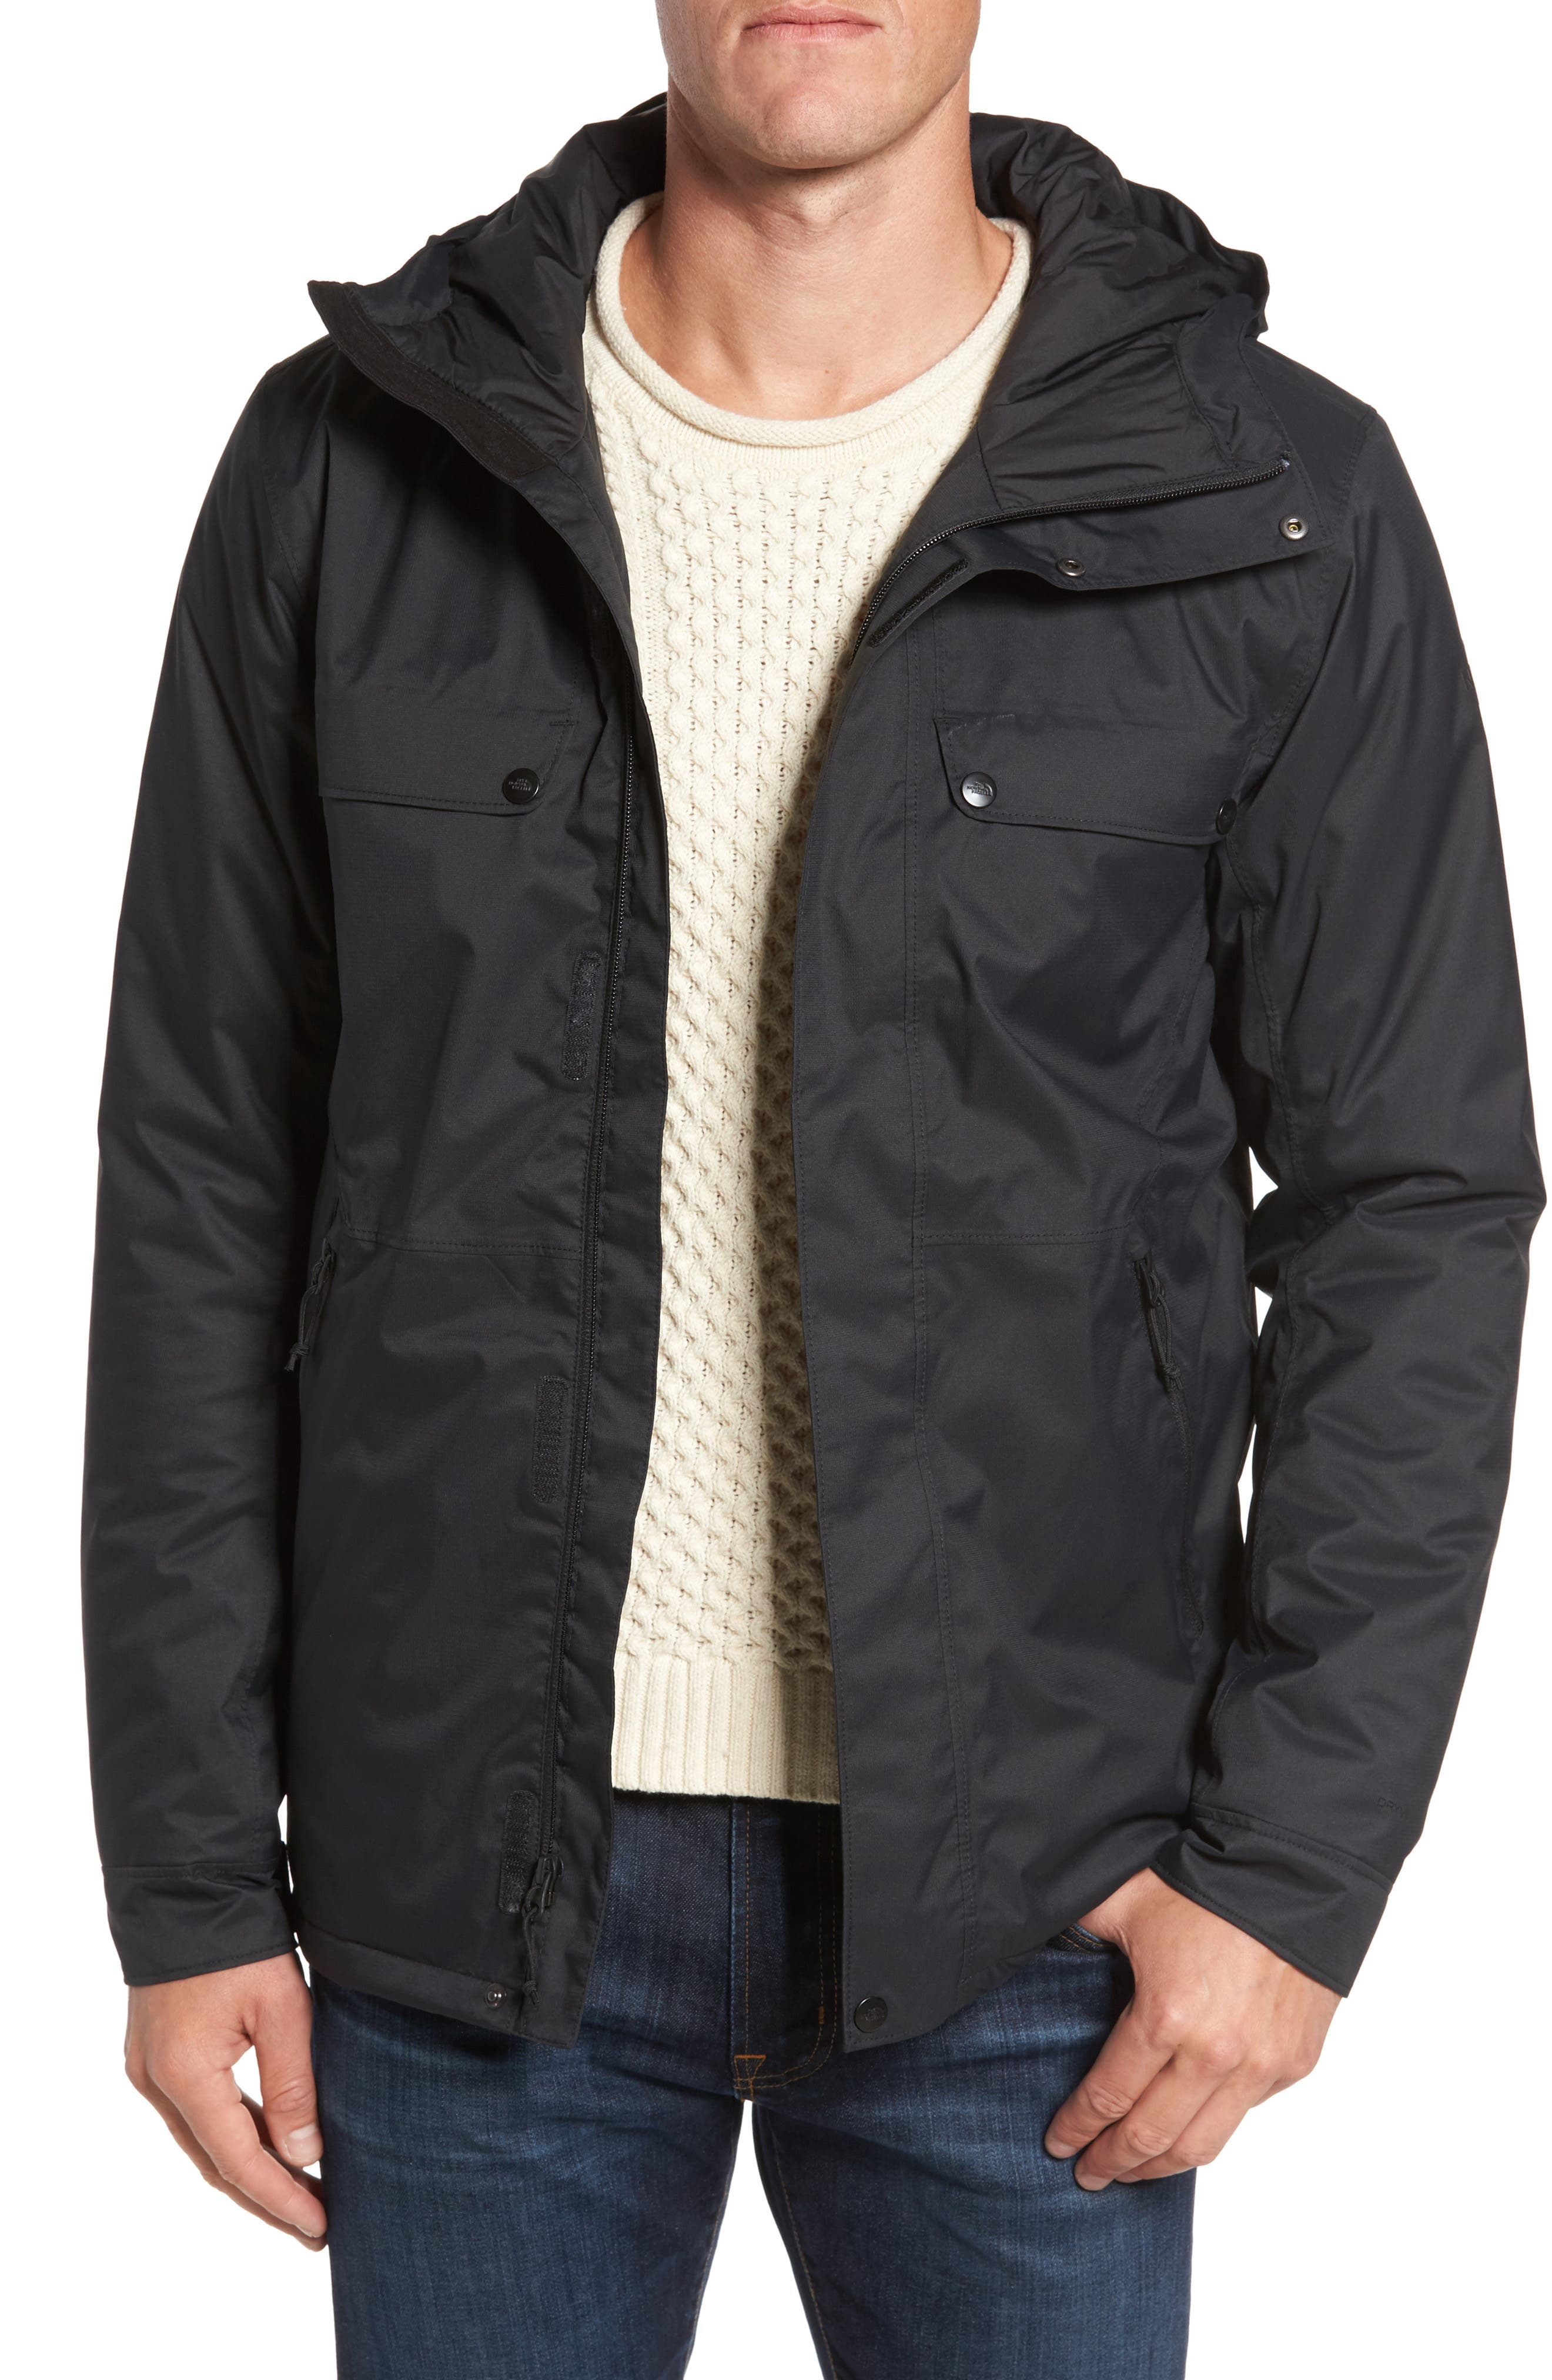 The North Face Jenison Insulated Waterproof Jacket